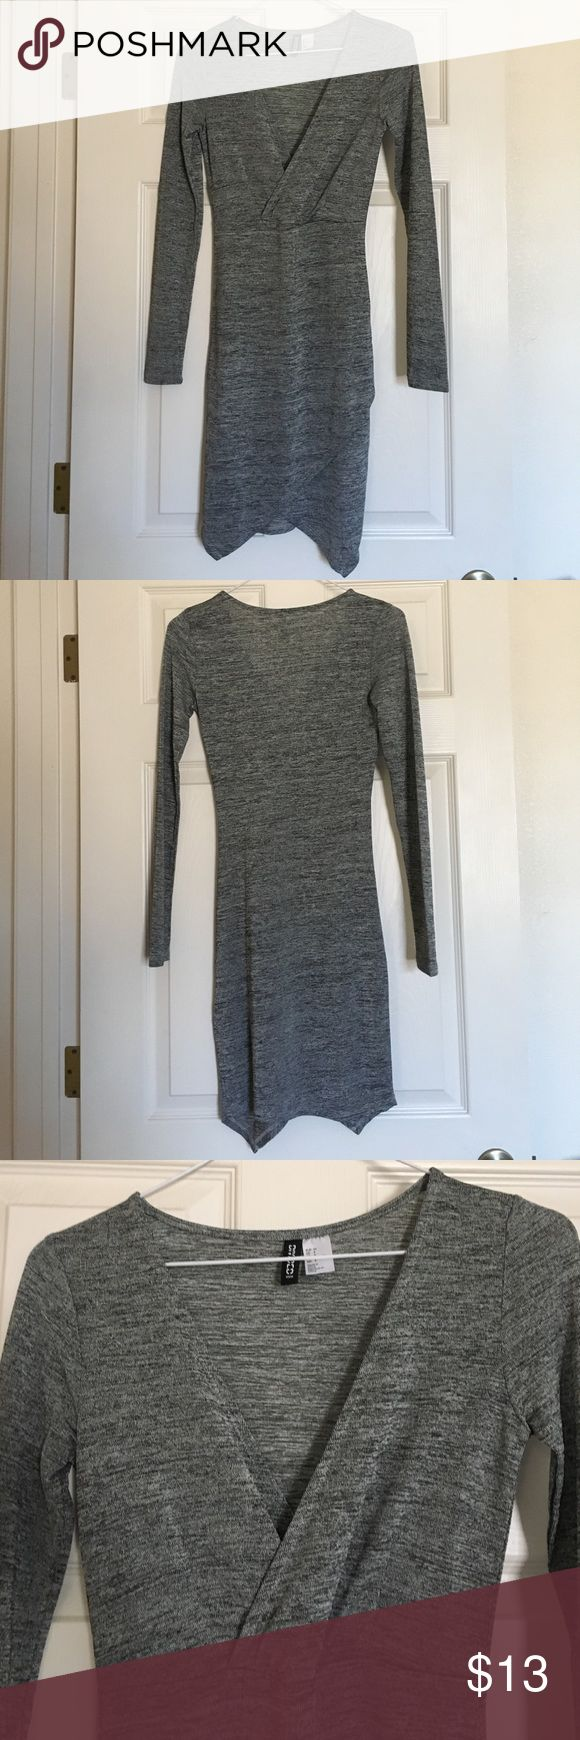 Divided by H&M Longsleeve V-Neck Dress Grey long sleeve v-neck dress with a tulip looking cut at the bottom from H&M. This form fitting dress has fabric a bit to thin for my liking so it has never been worn. H&M Dresses Long Sleeve